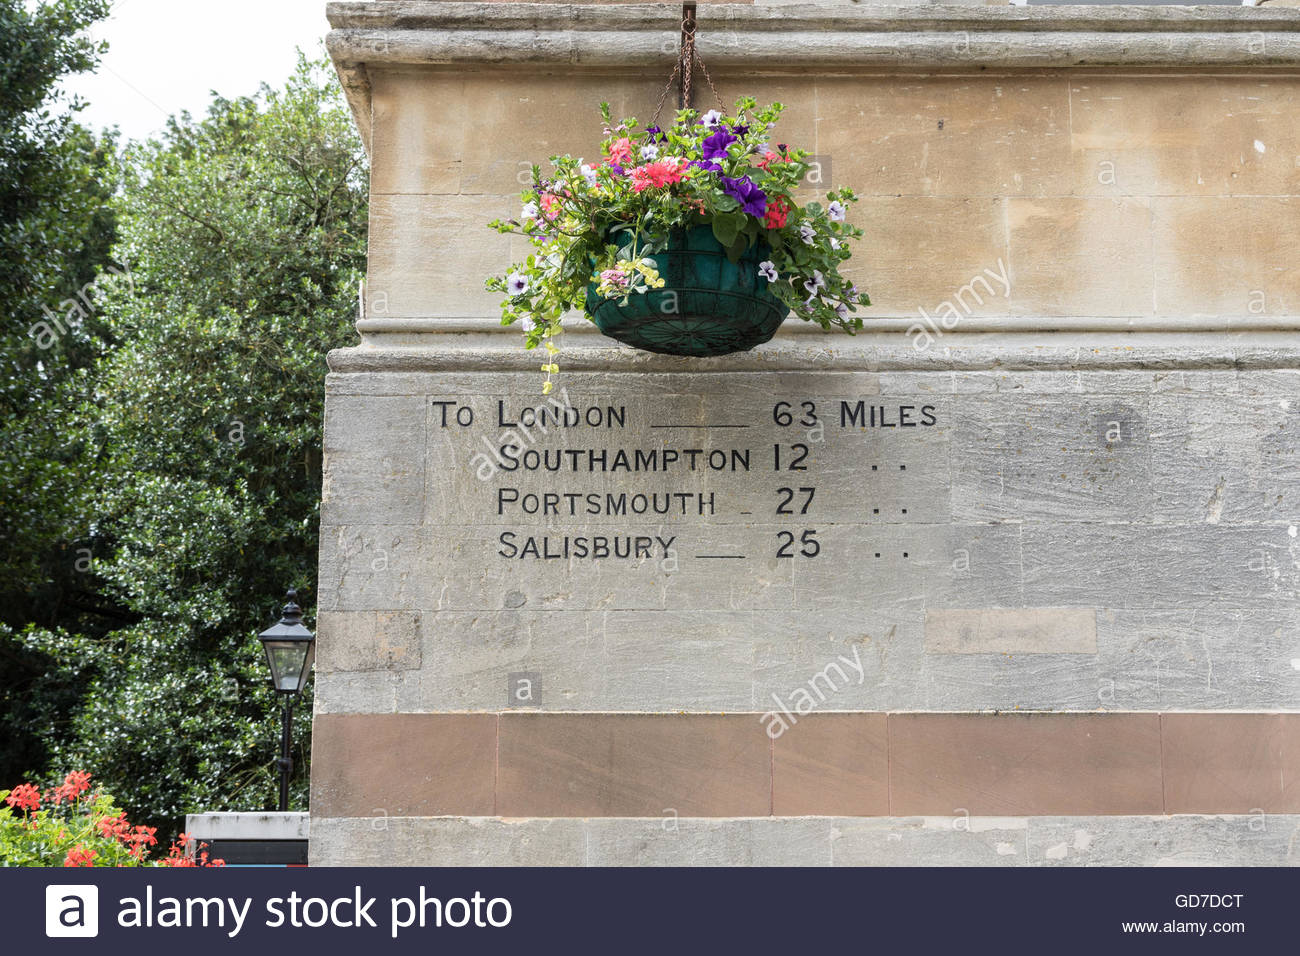 Milestone markers etched into the wall of a building in Winchester, Hampshire, UK - Stock Image